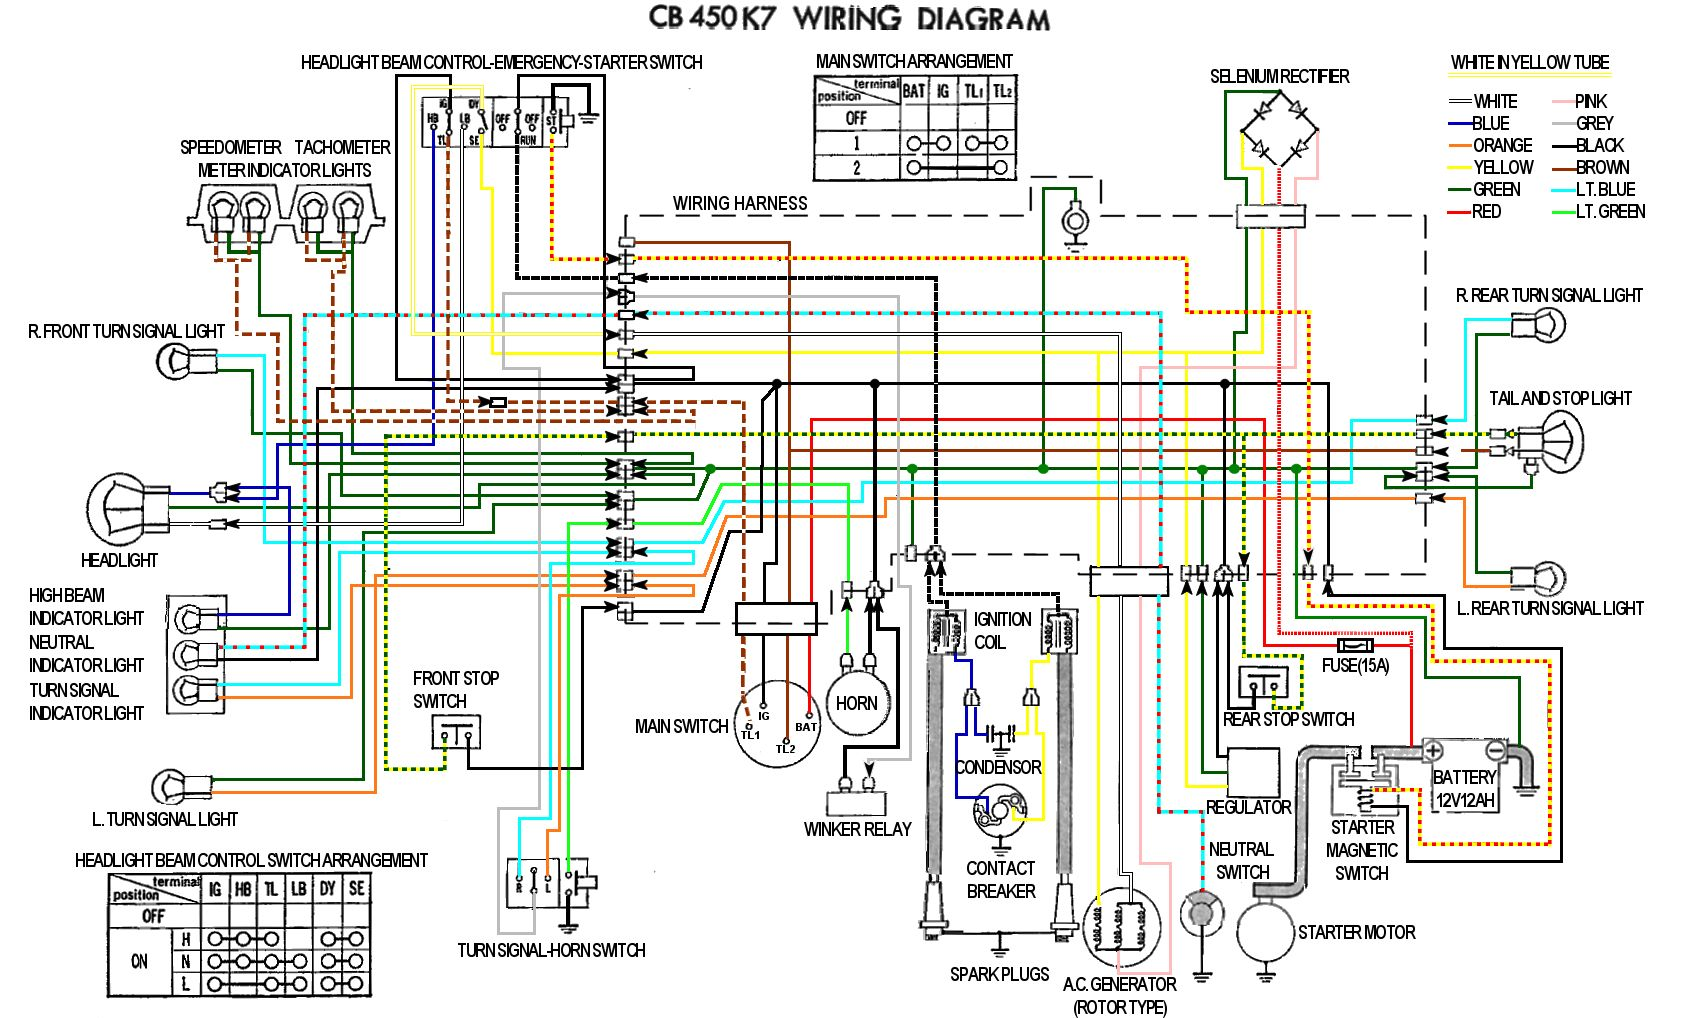 1978 fj40 wiring diagram 1999 mustang gt honda civic library